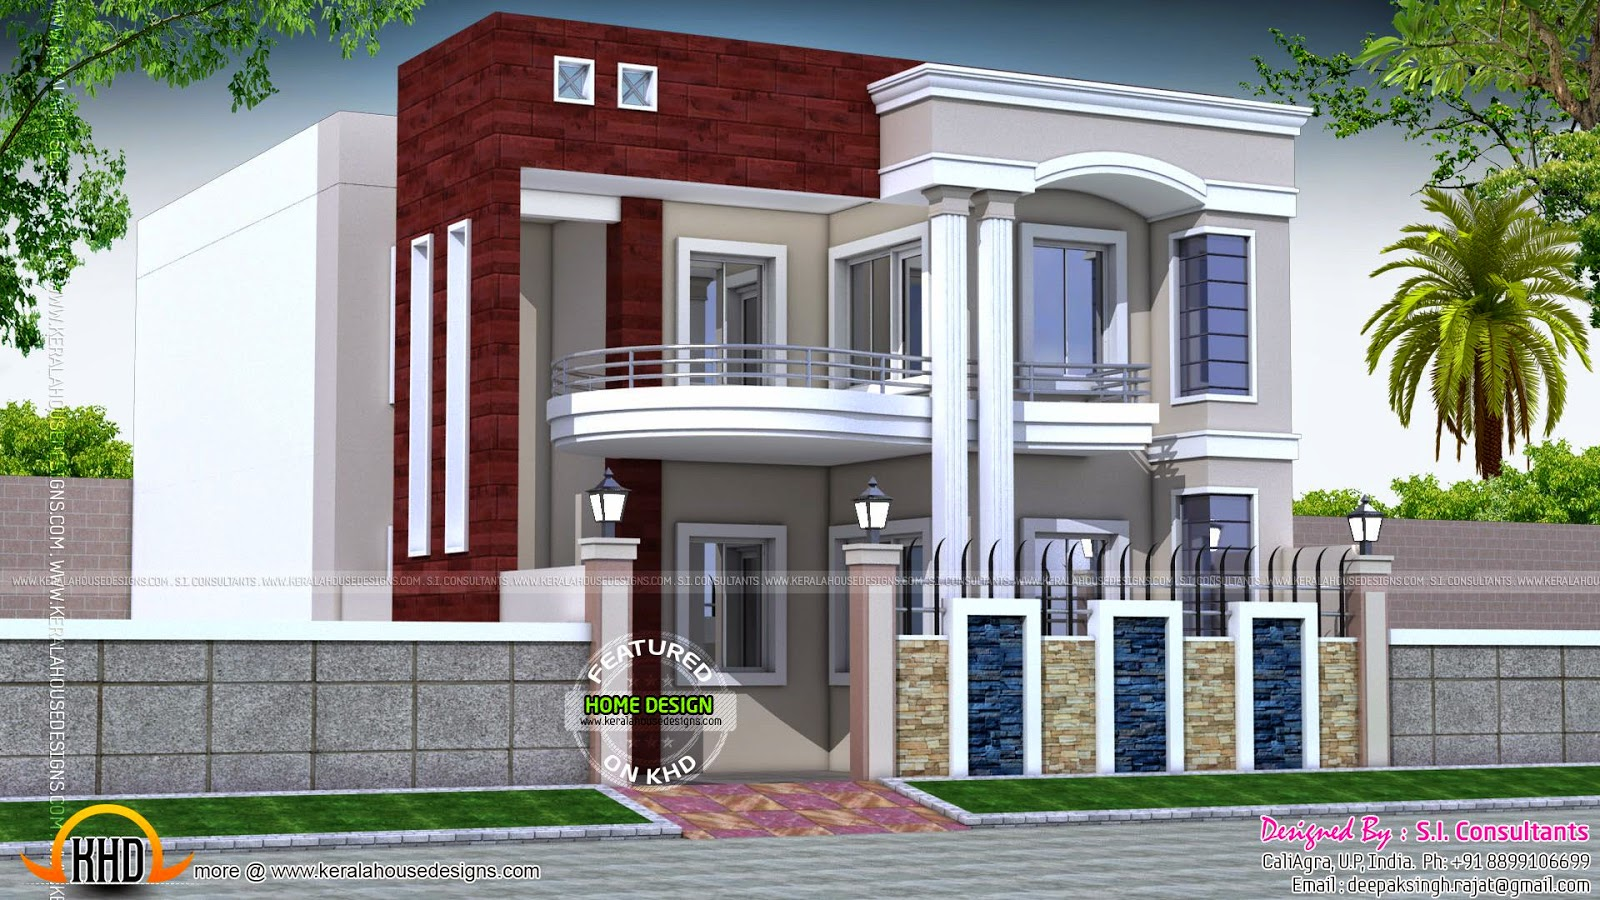 House design in north india kerala home design and floor for South indian small house designs